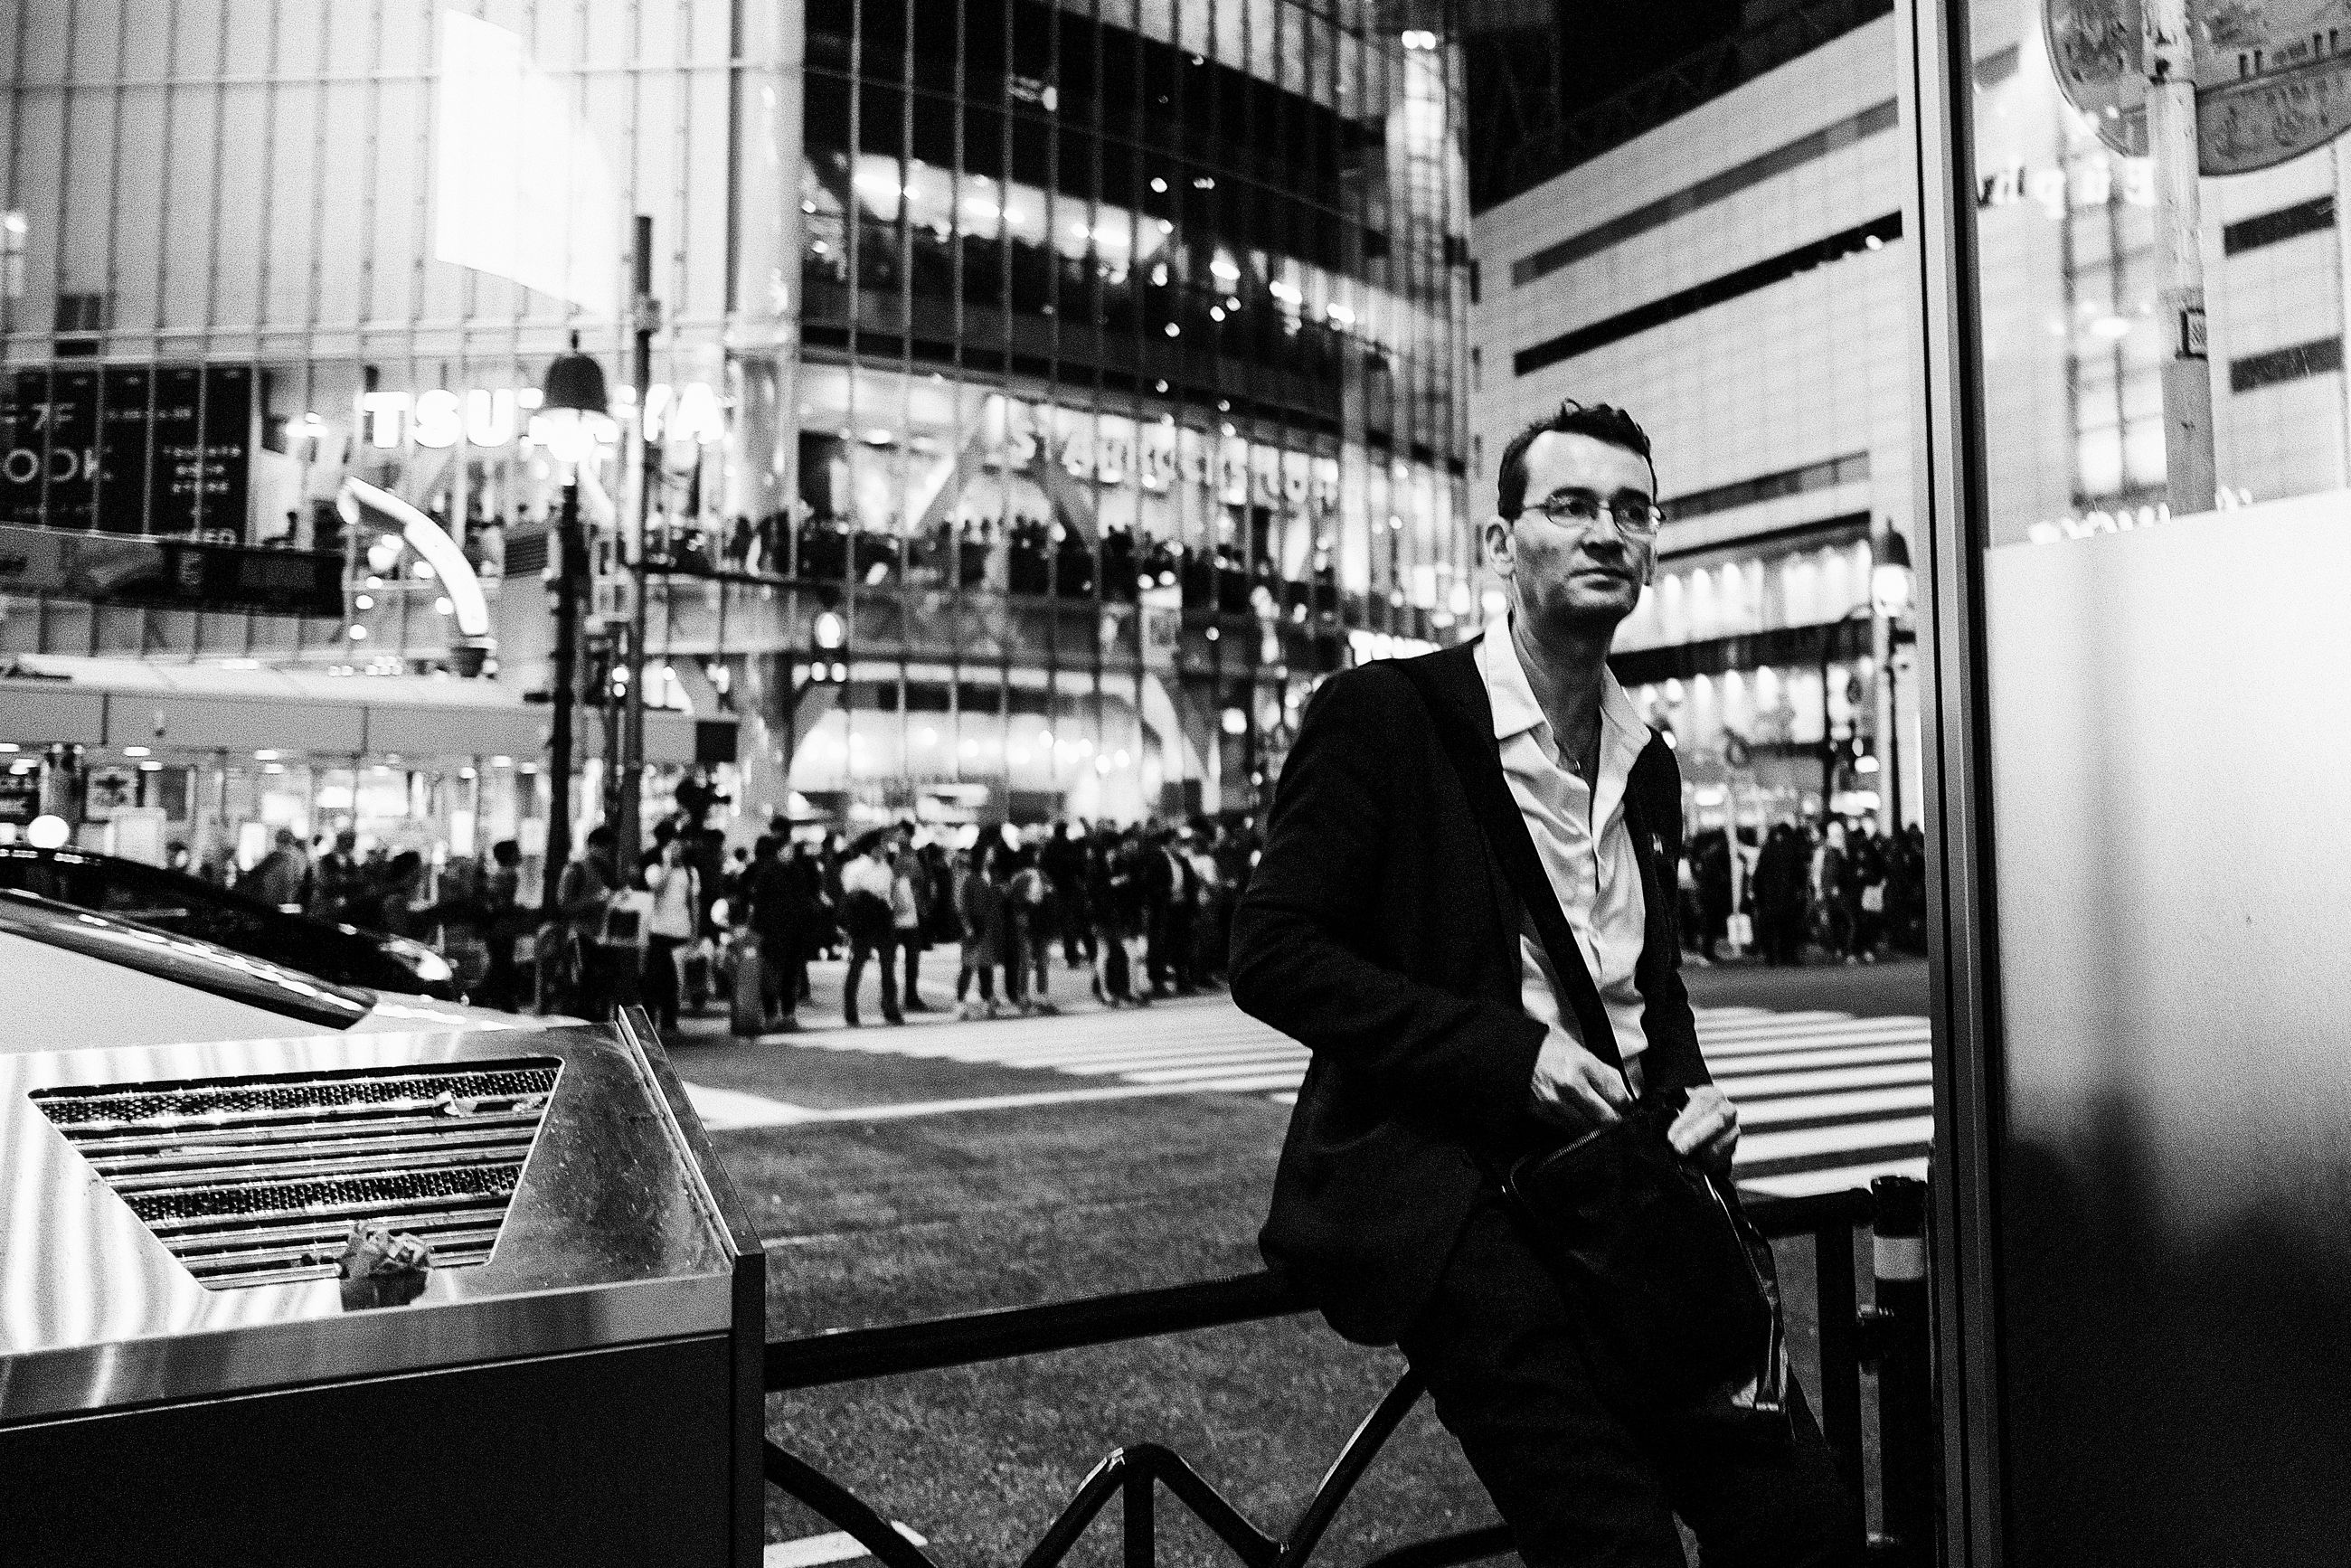 architecture, city, real people, one person, built structure, city life, building exterior, men, incidental people, leisure activity, lifestyles, street, young men, focus on foreground, three quarter length, young adult, standing, transportation, well-dressed, outdoors